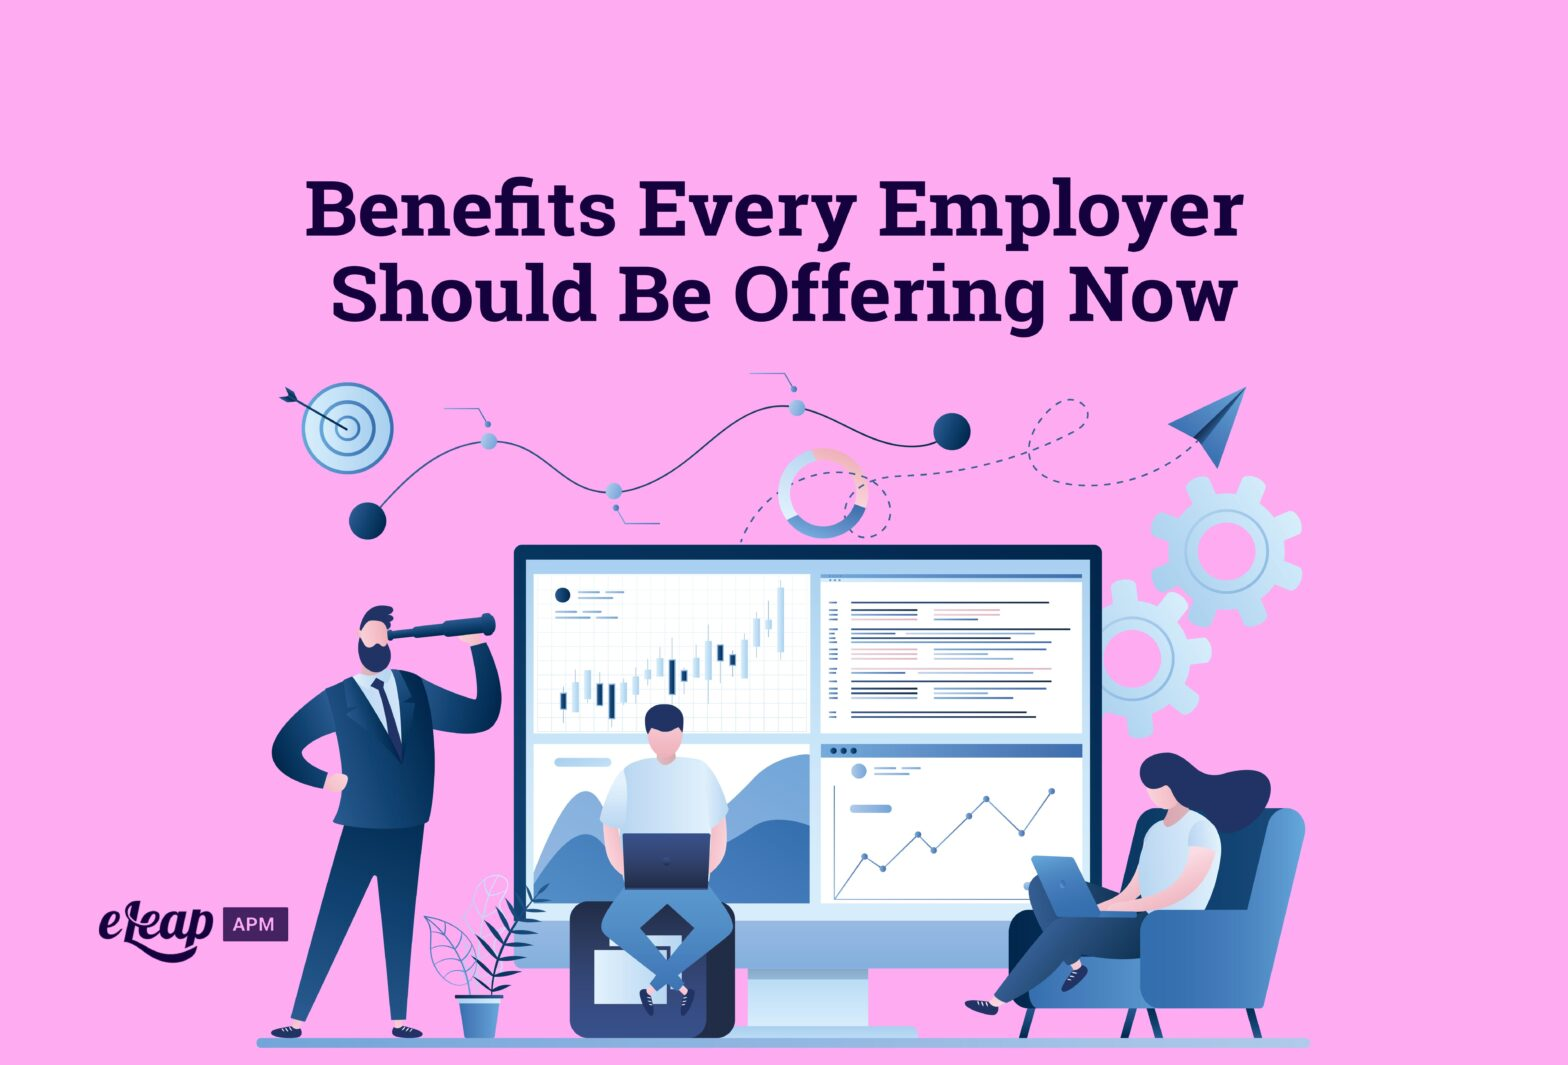 Benefits Every Employer Should Be Offering Now